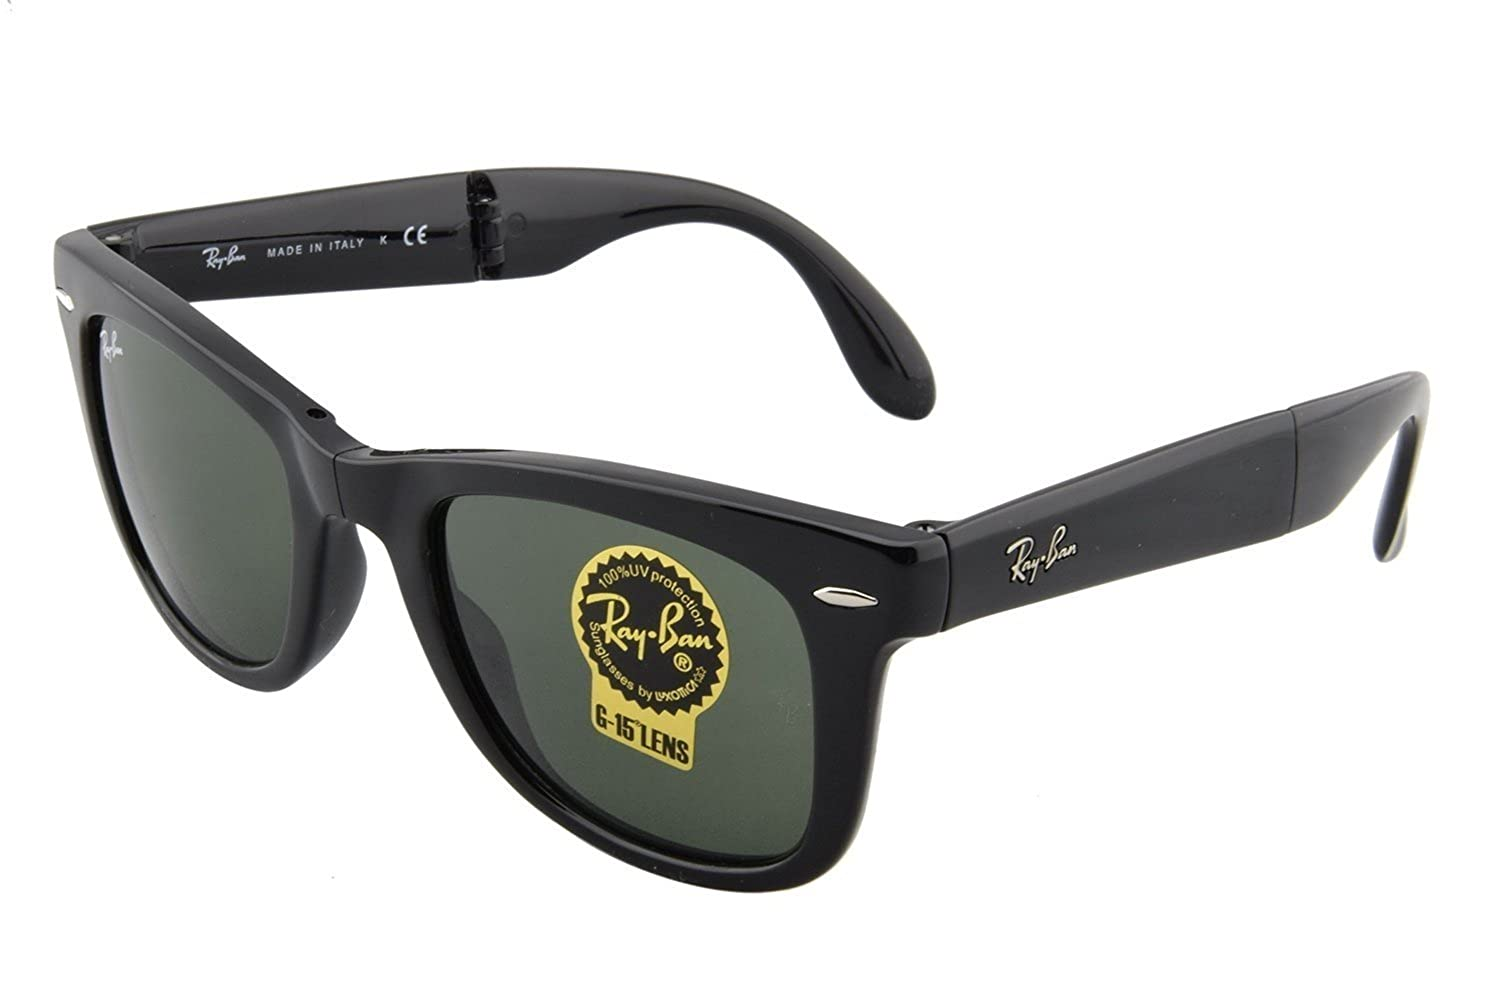 9574a361727d Amazon.com: New Authentic Ray-Ban RB 4105 601 54mm Wayfarer Folding Black  with green G-15: Shoes